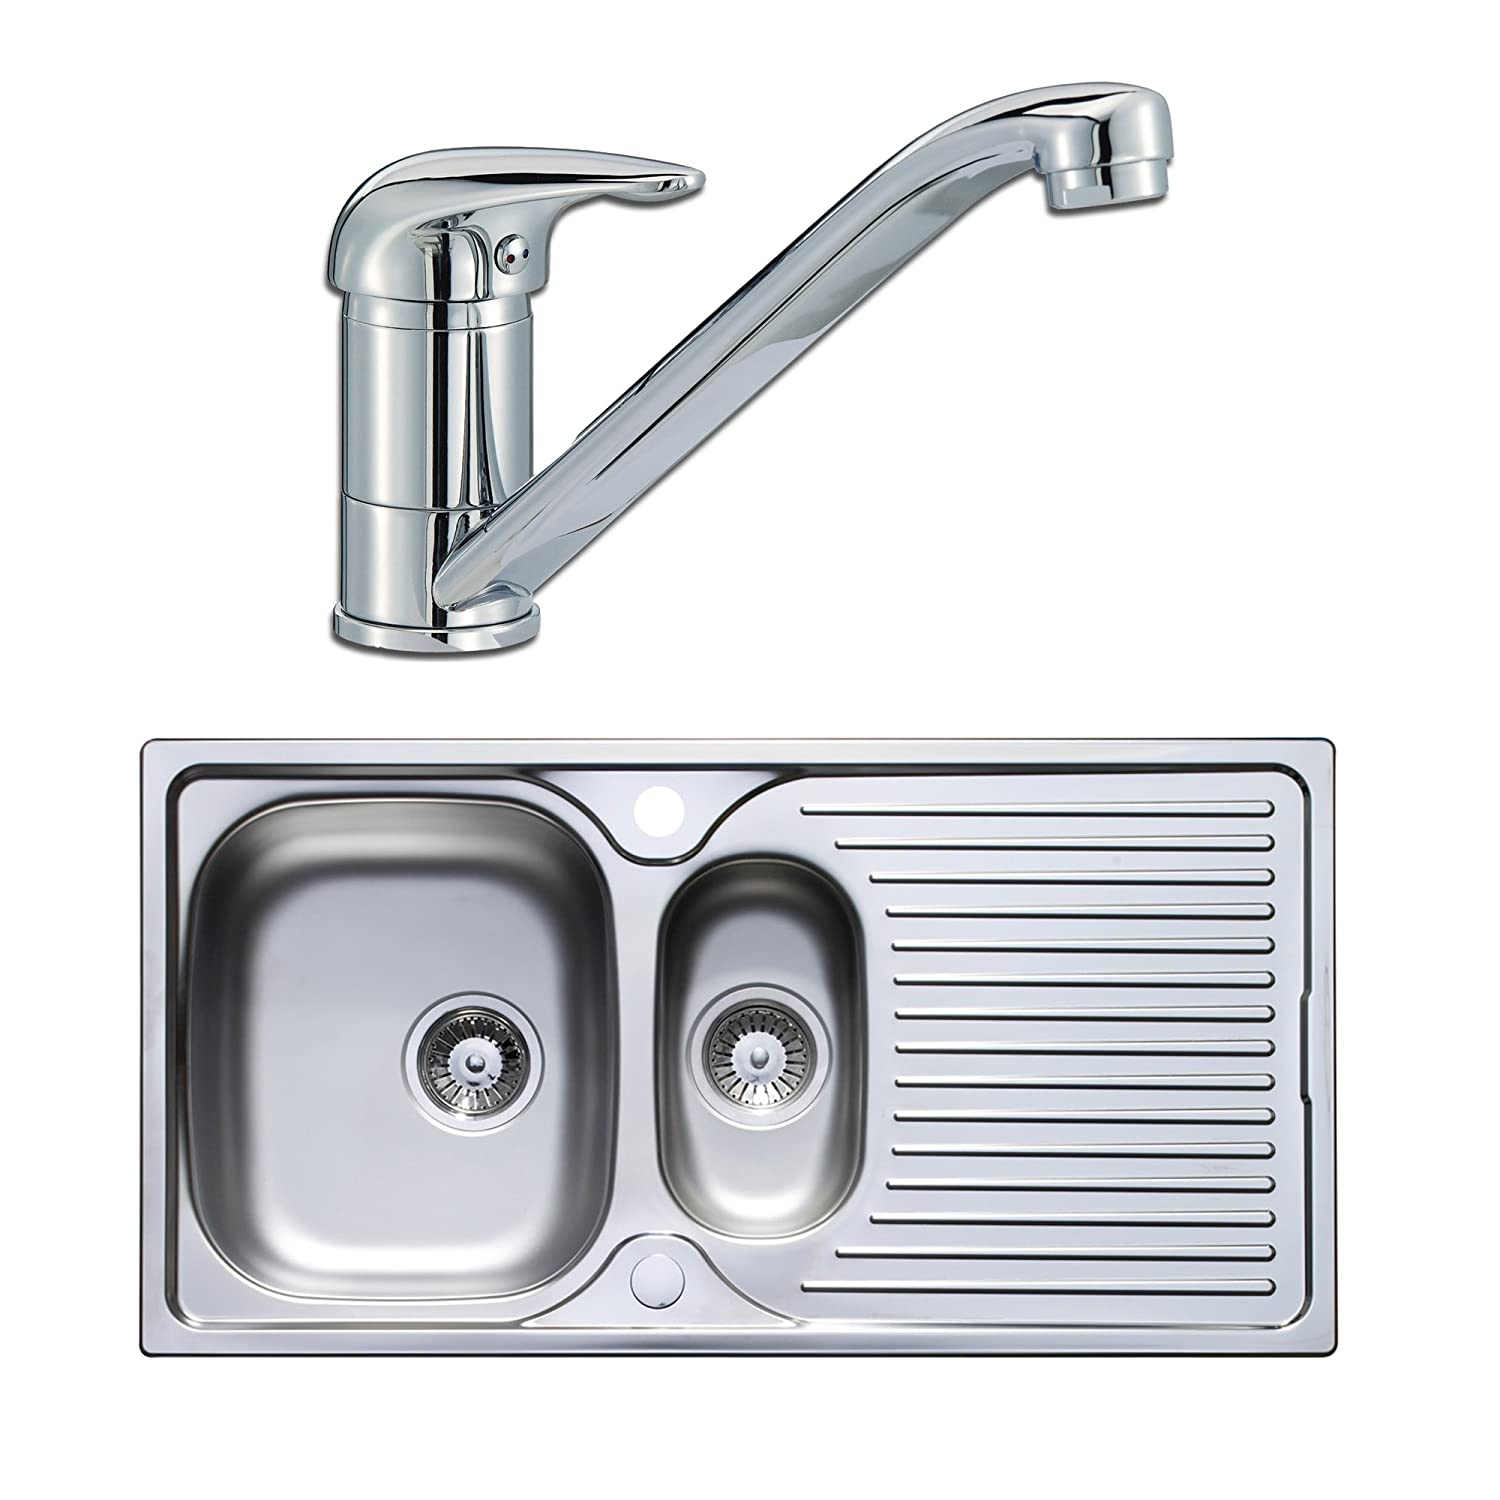 Astracast Quality 1.5 Bowl Stainless Steel Kitchen Sink & Lever Tap ...